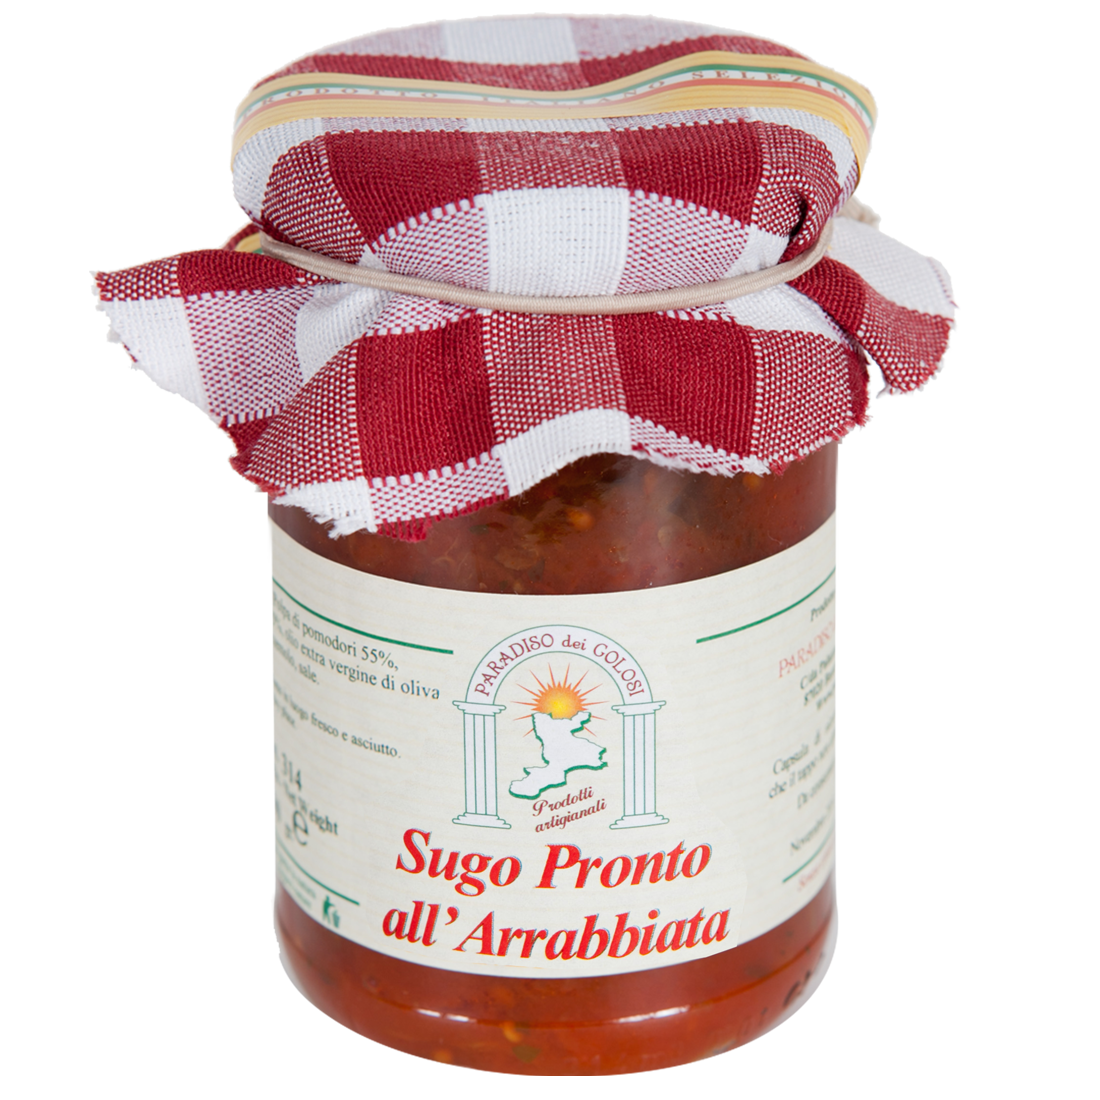 Sugo Pronto All'arrabiata